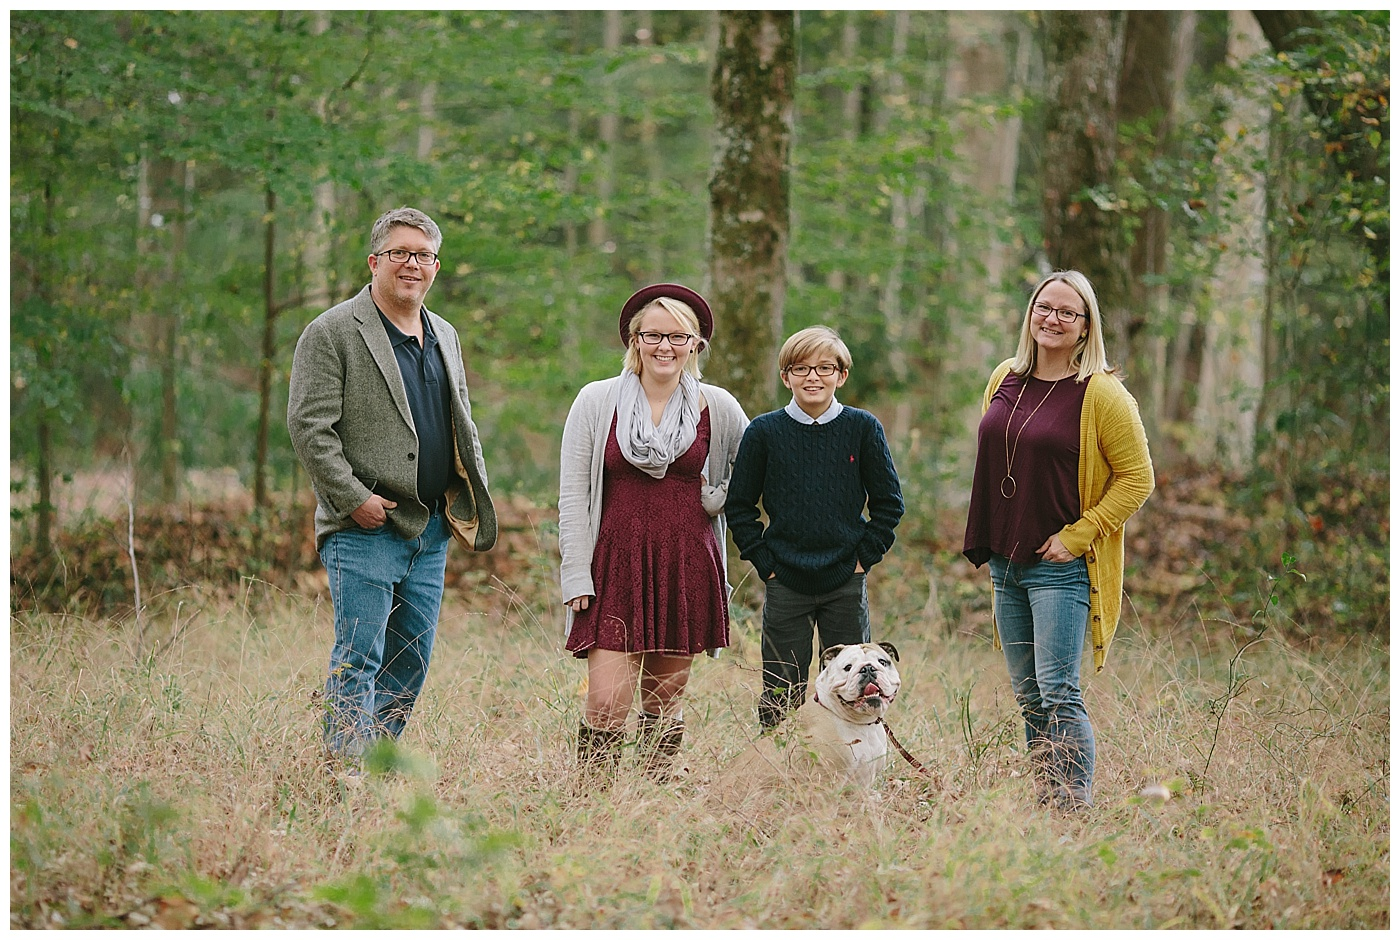 The Skaggs Family | Family Portrait Photography